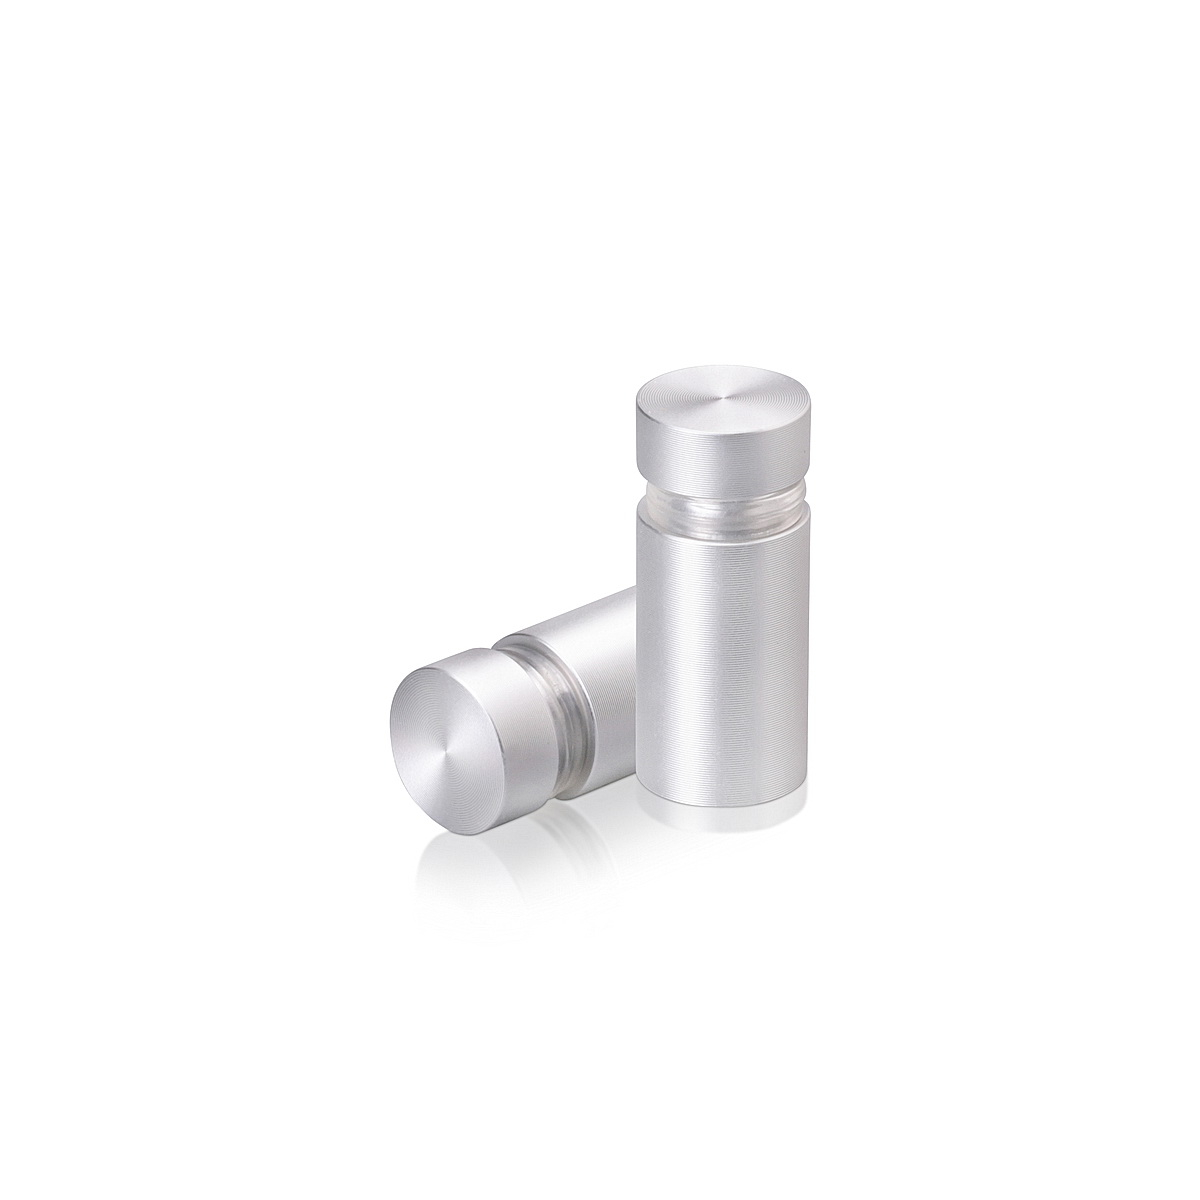 1/2'' Diameter X 3/4'' Barrel Length, Aluminum Flat Head Standoffs, Clear Anodized Finish Easy Fasten Standoff (For Inside / Outside use) Tamper Proof Standoff